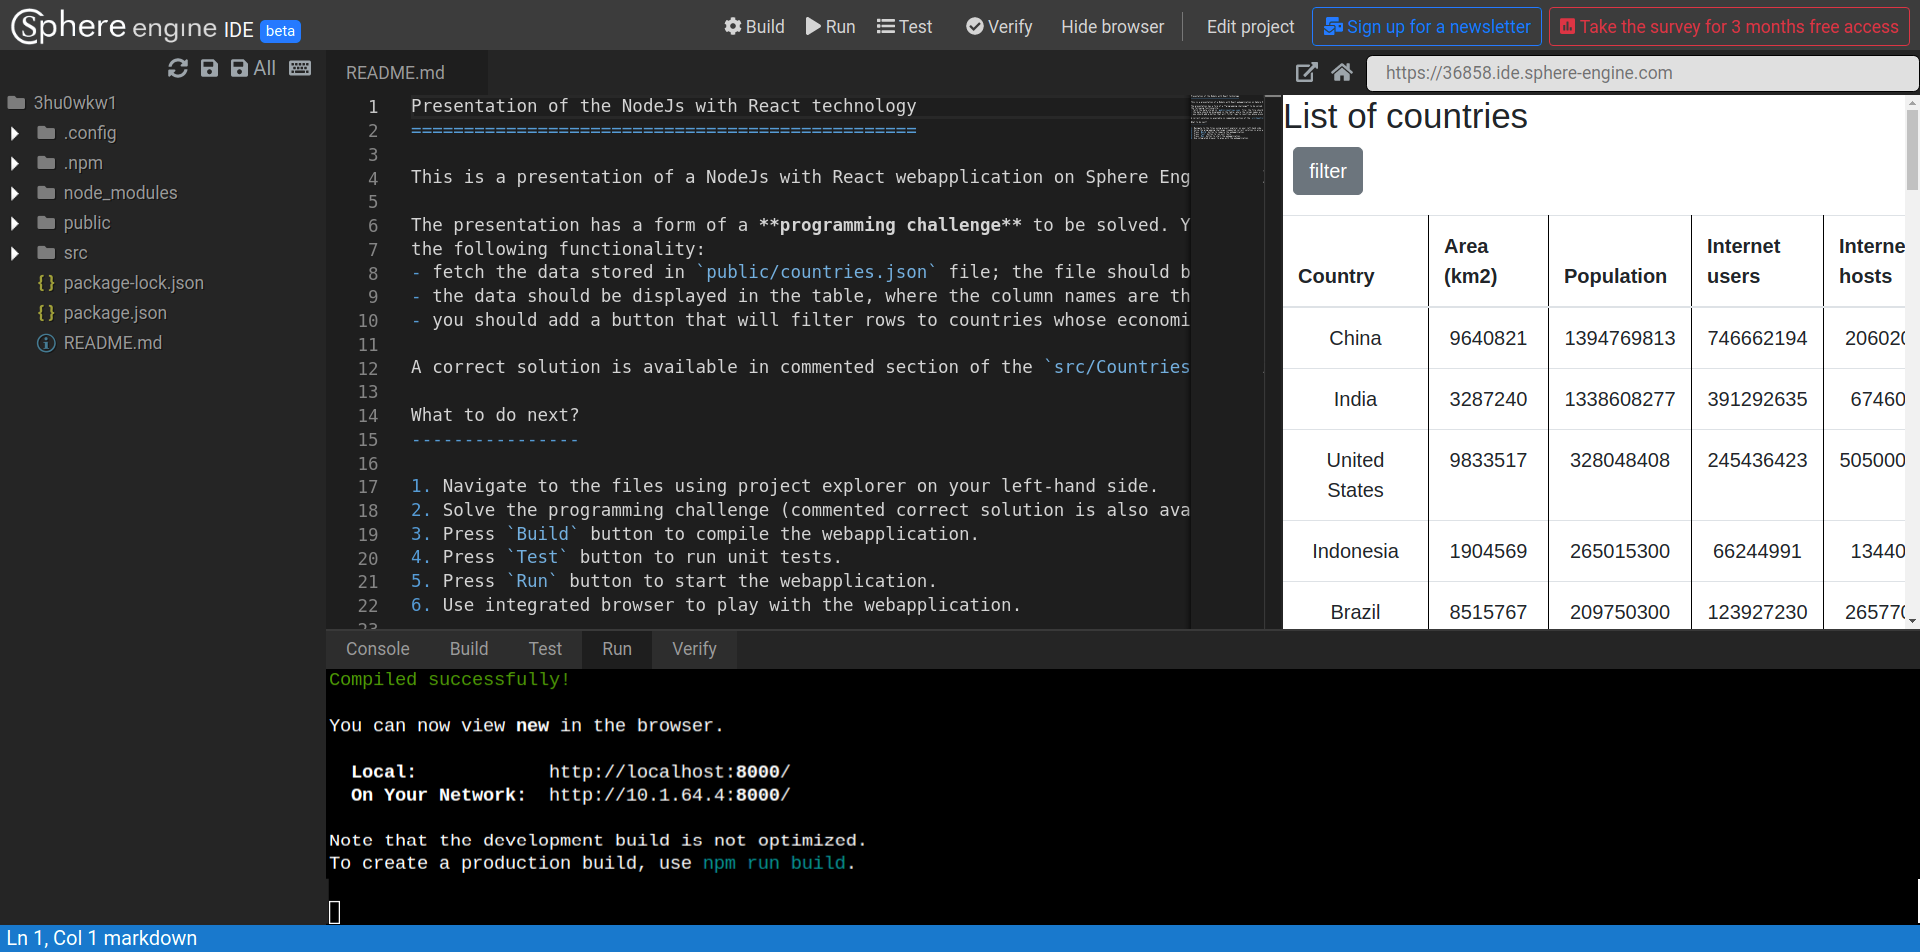 Screenshot of Sphere Engine IDE